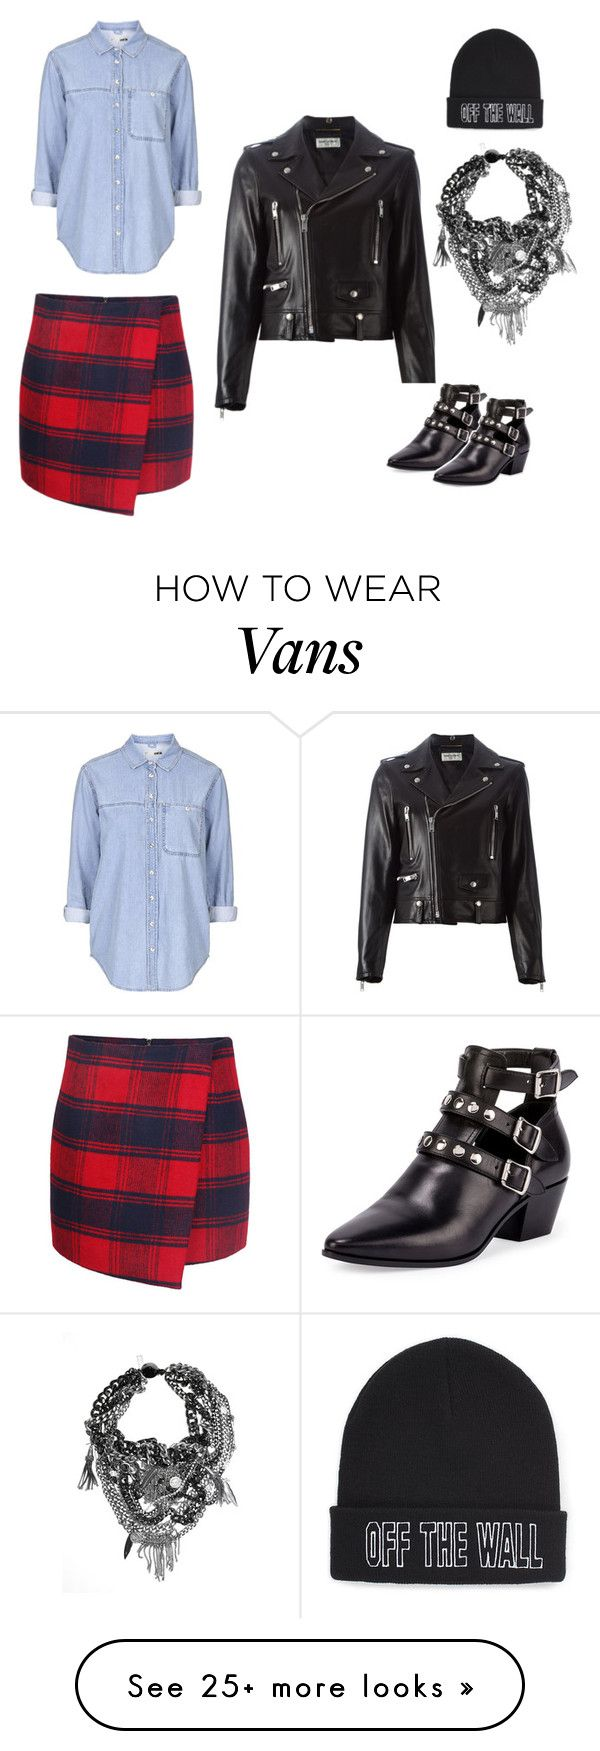 """""""rocker chic"""" by ioana-croitoriu on Polyvore featuring Vans, Topshop, Yves Saint Laurent, women's clothing, women, female, woman, misses and juniors"""